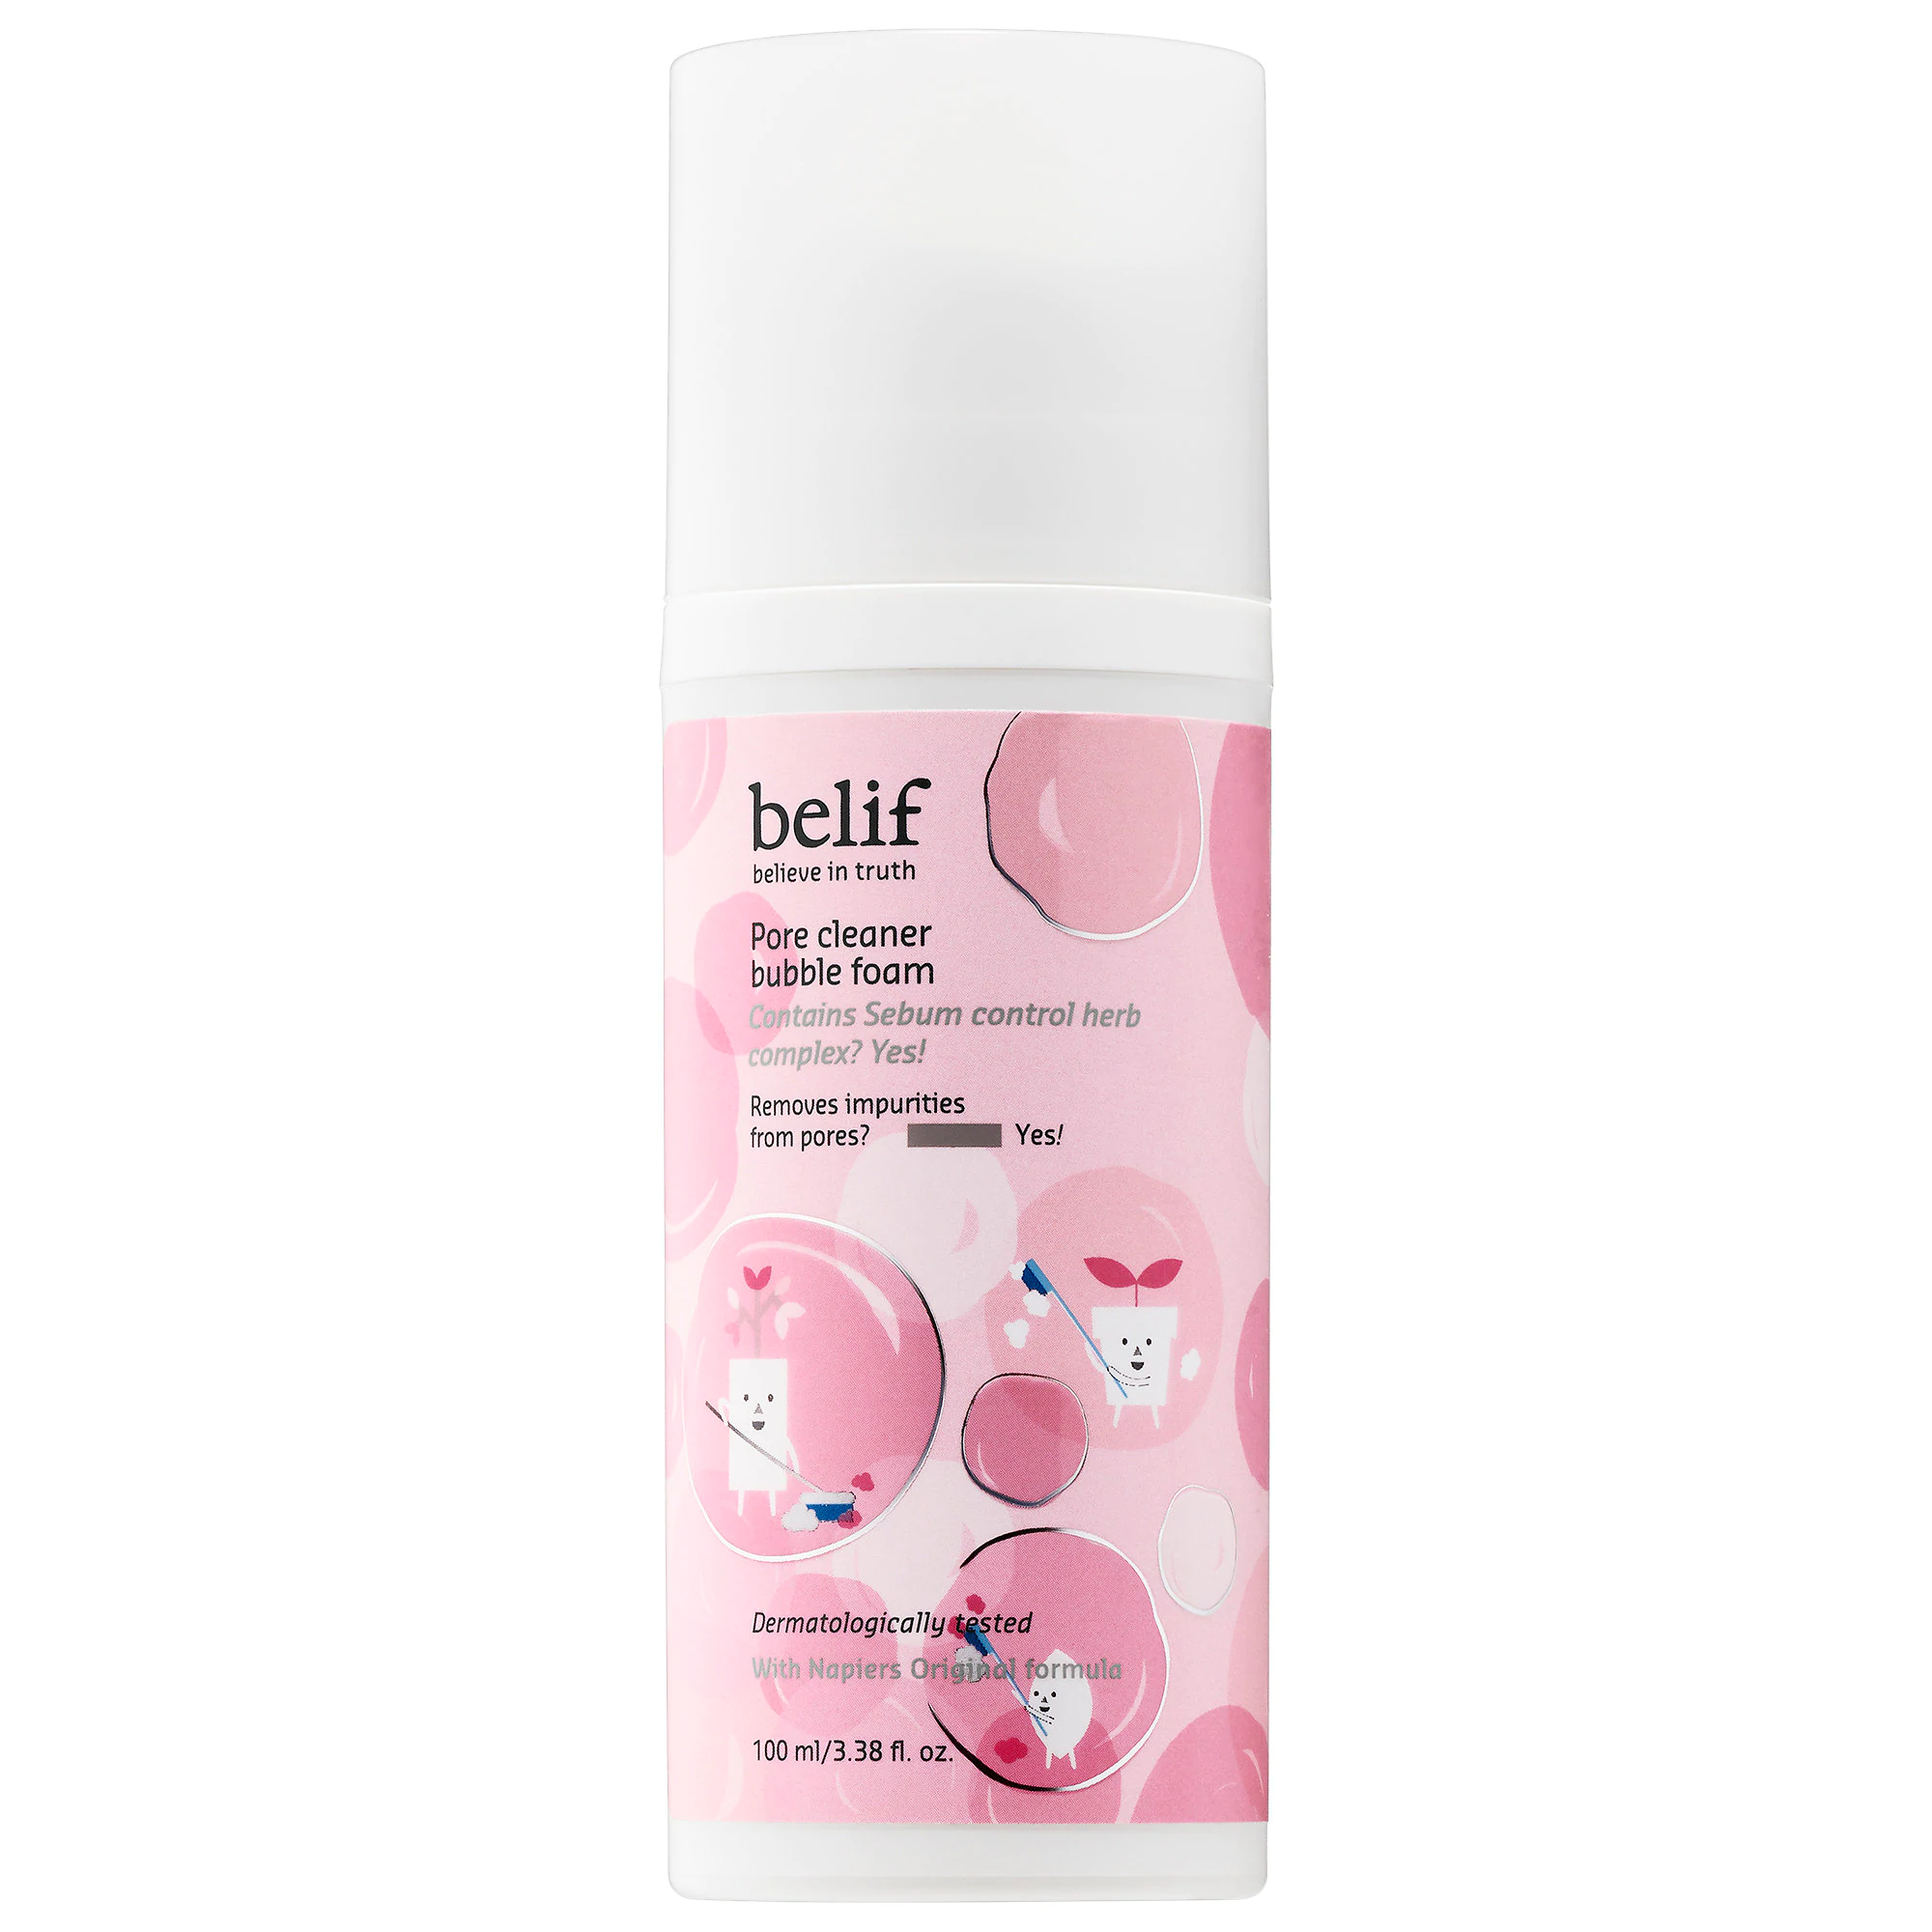 Belif Pore Cleaner Bubble Foam